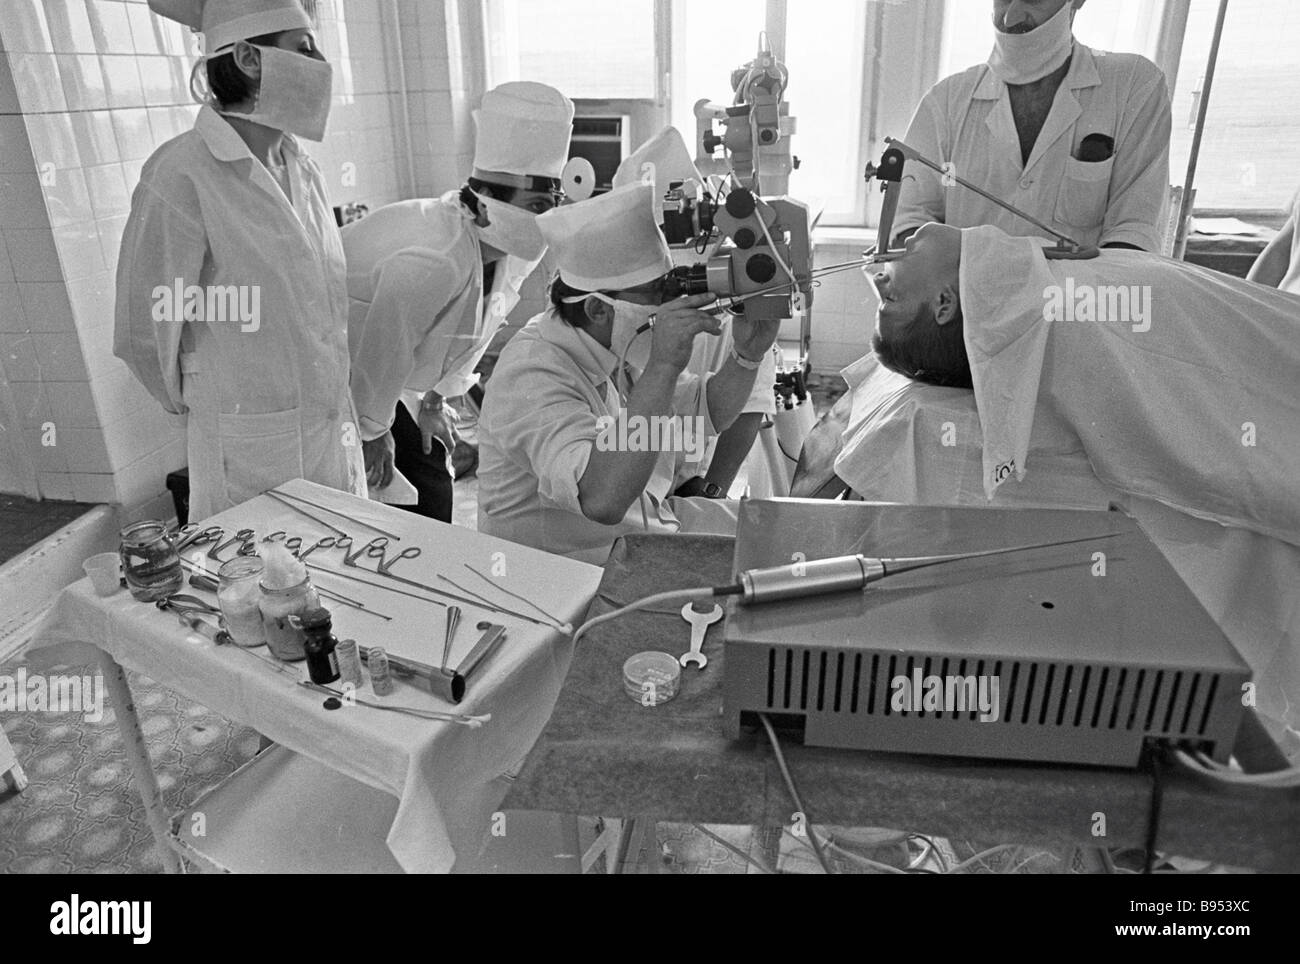 Doctors of the ENT department of the regional clinical hospital operate a patient - Stock Image